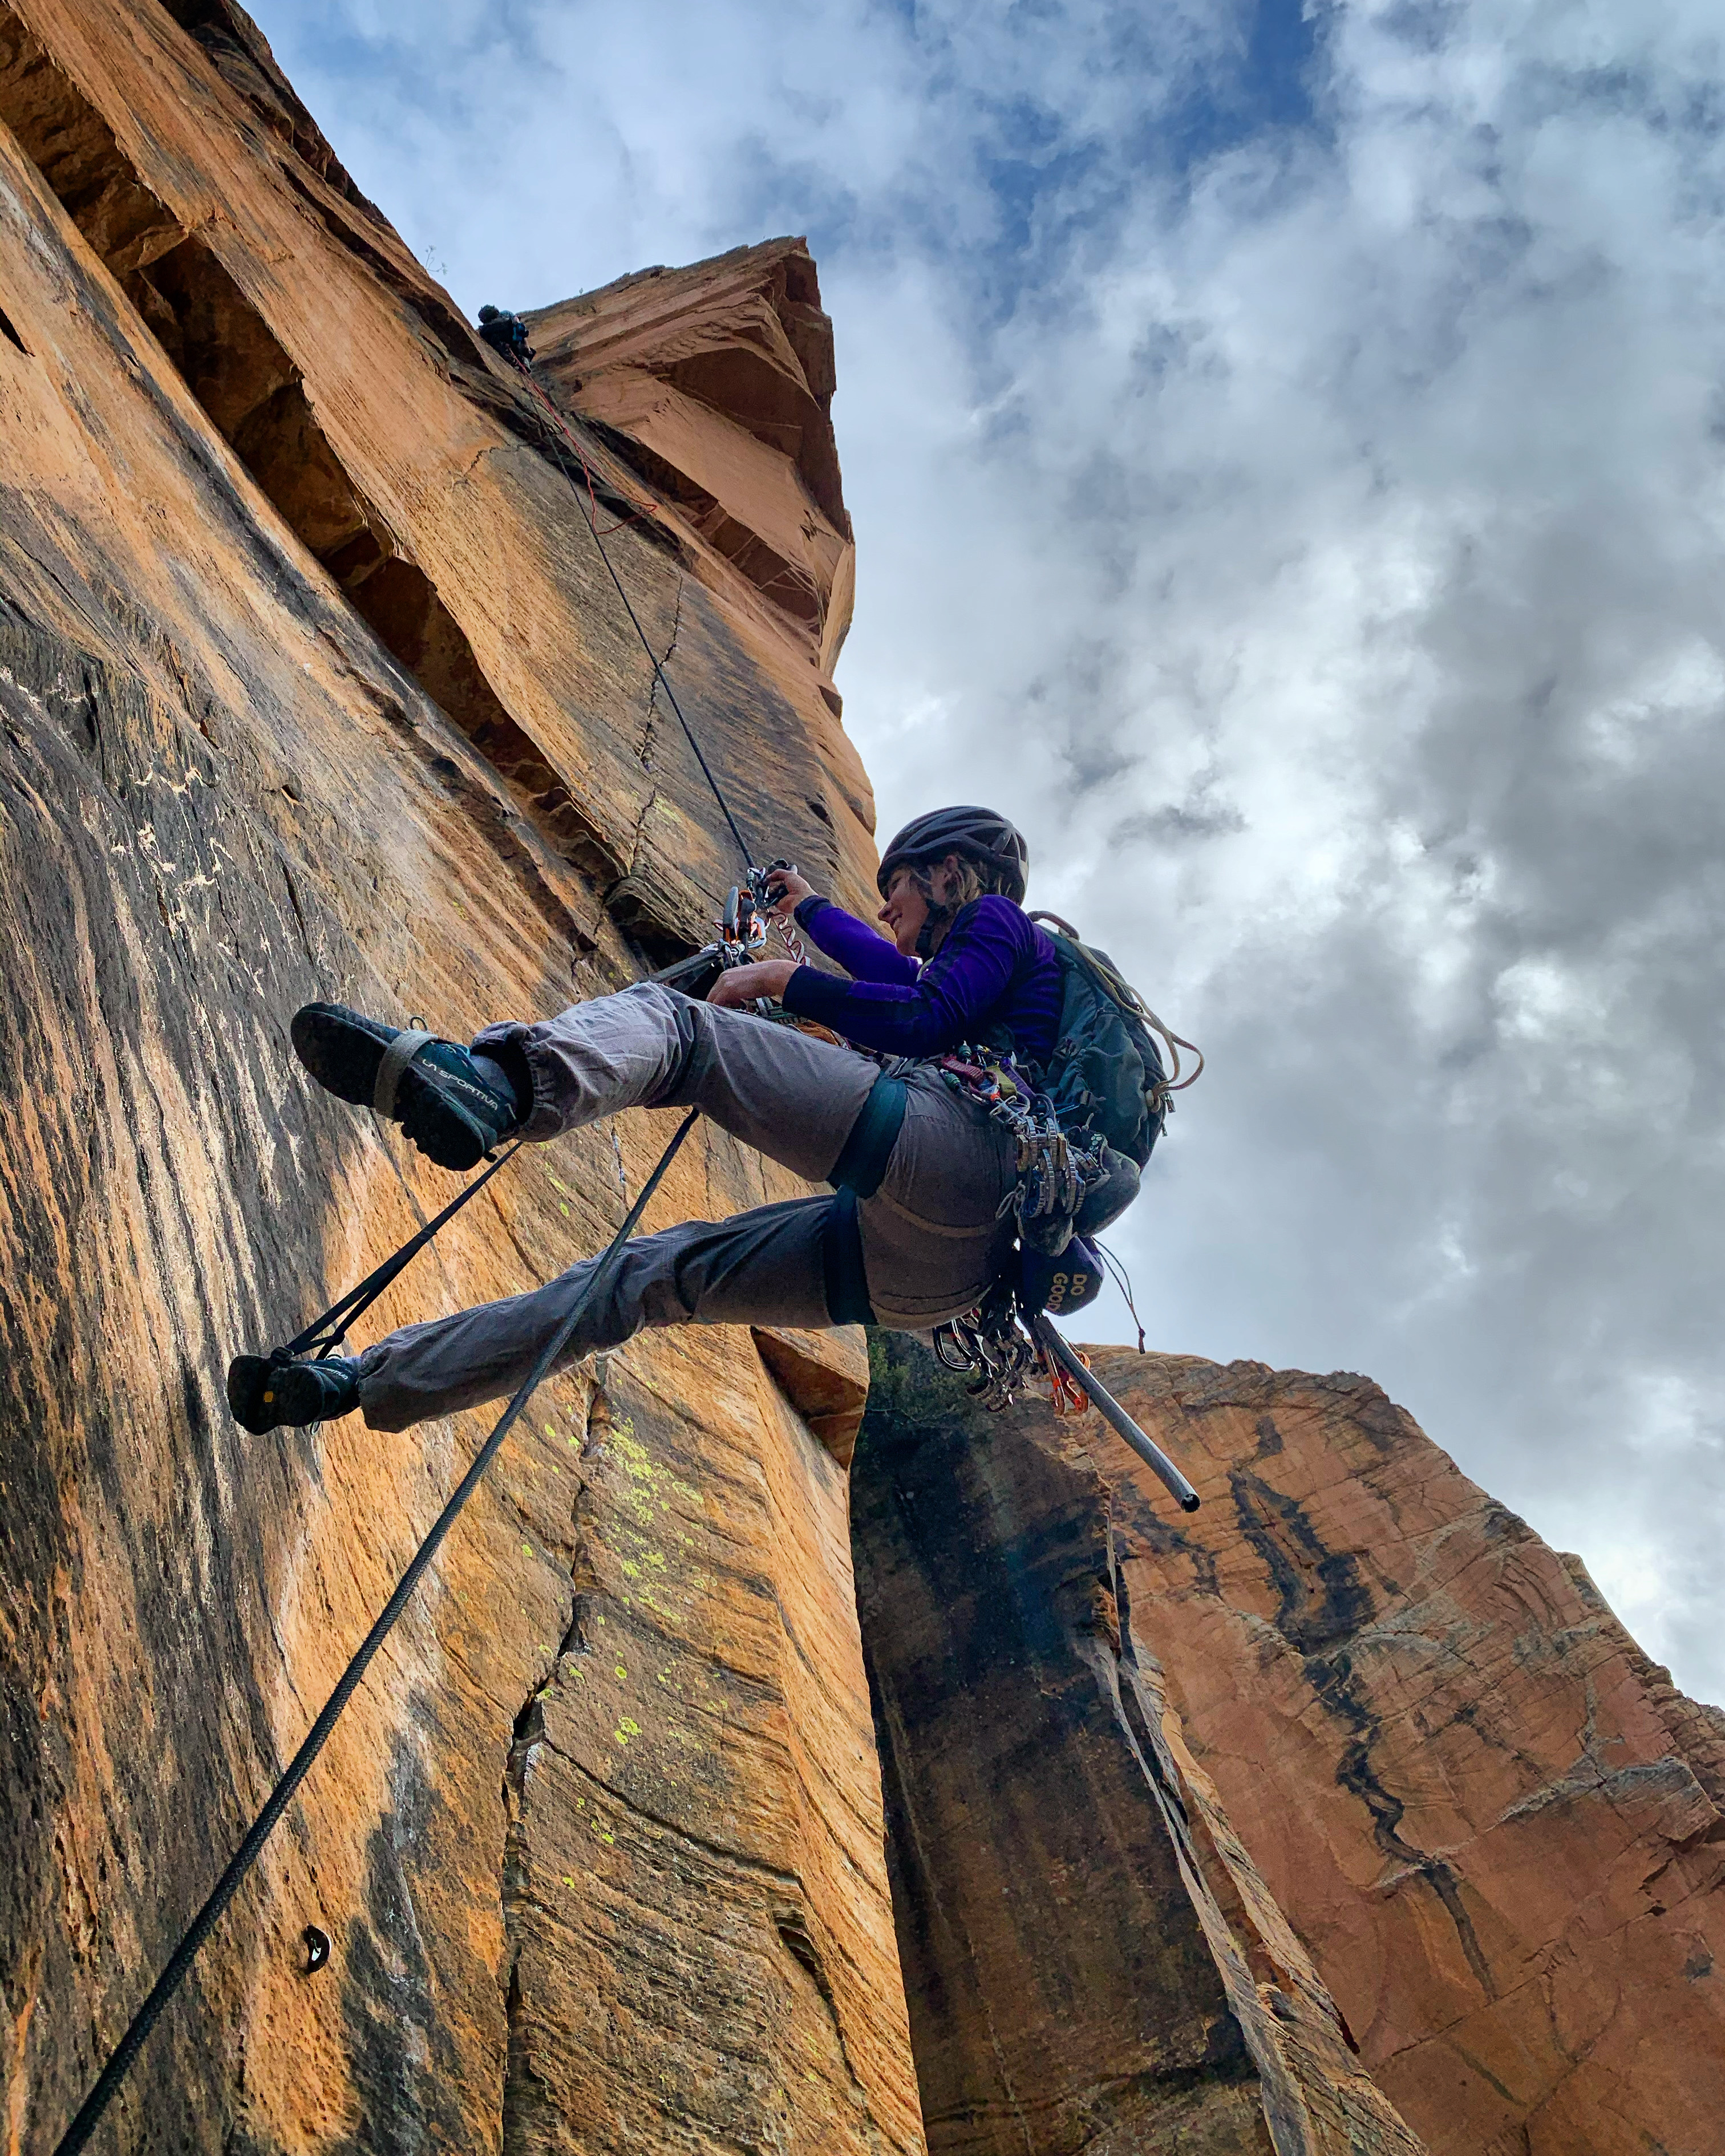 Sarah Holditch jugging out after a day working on the roof pitch. [Photo] Lor Sabourin